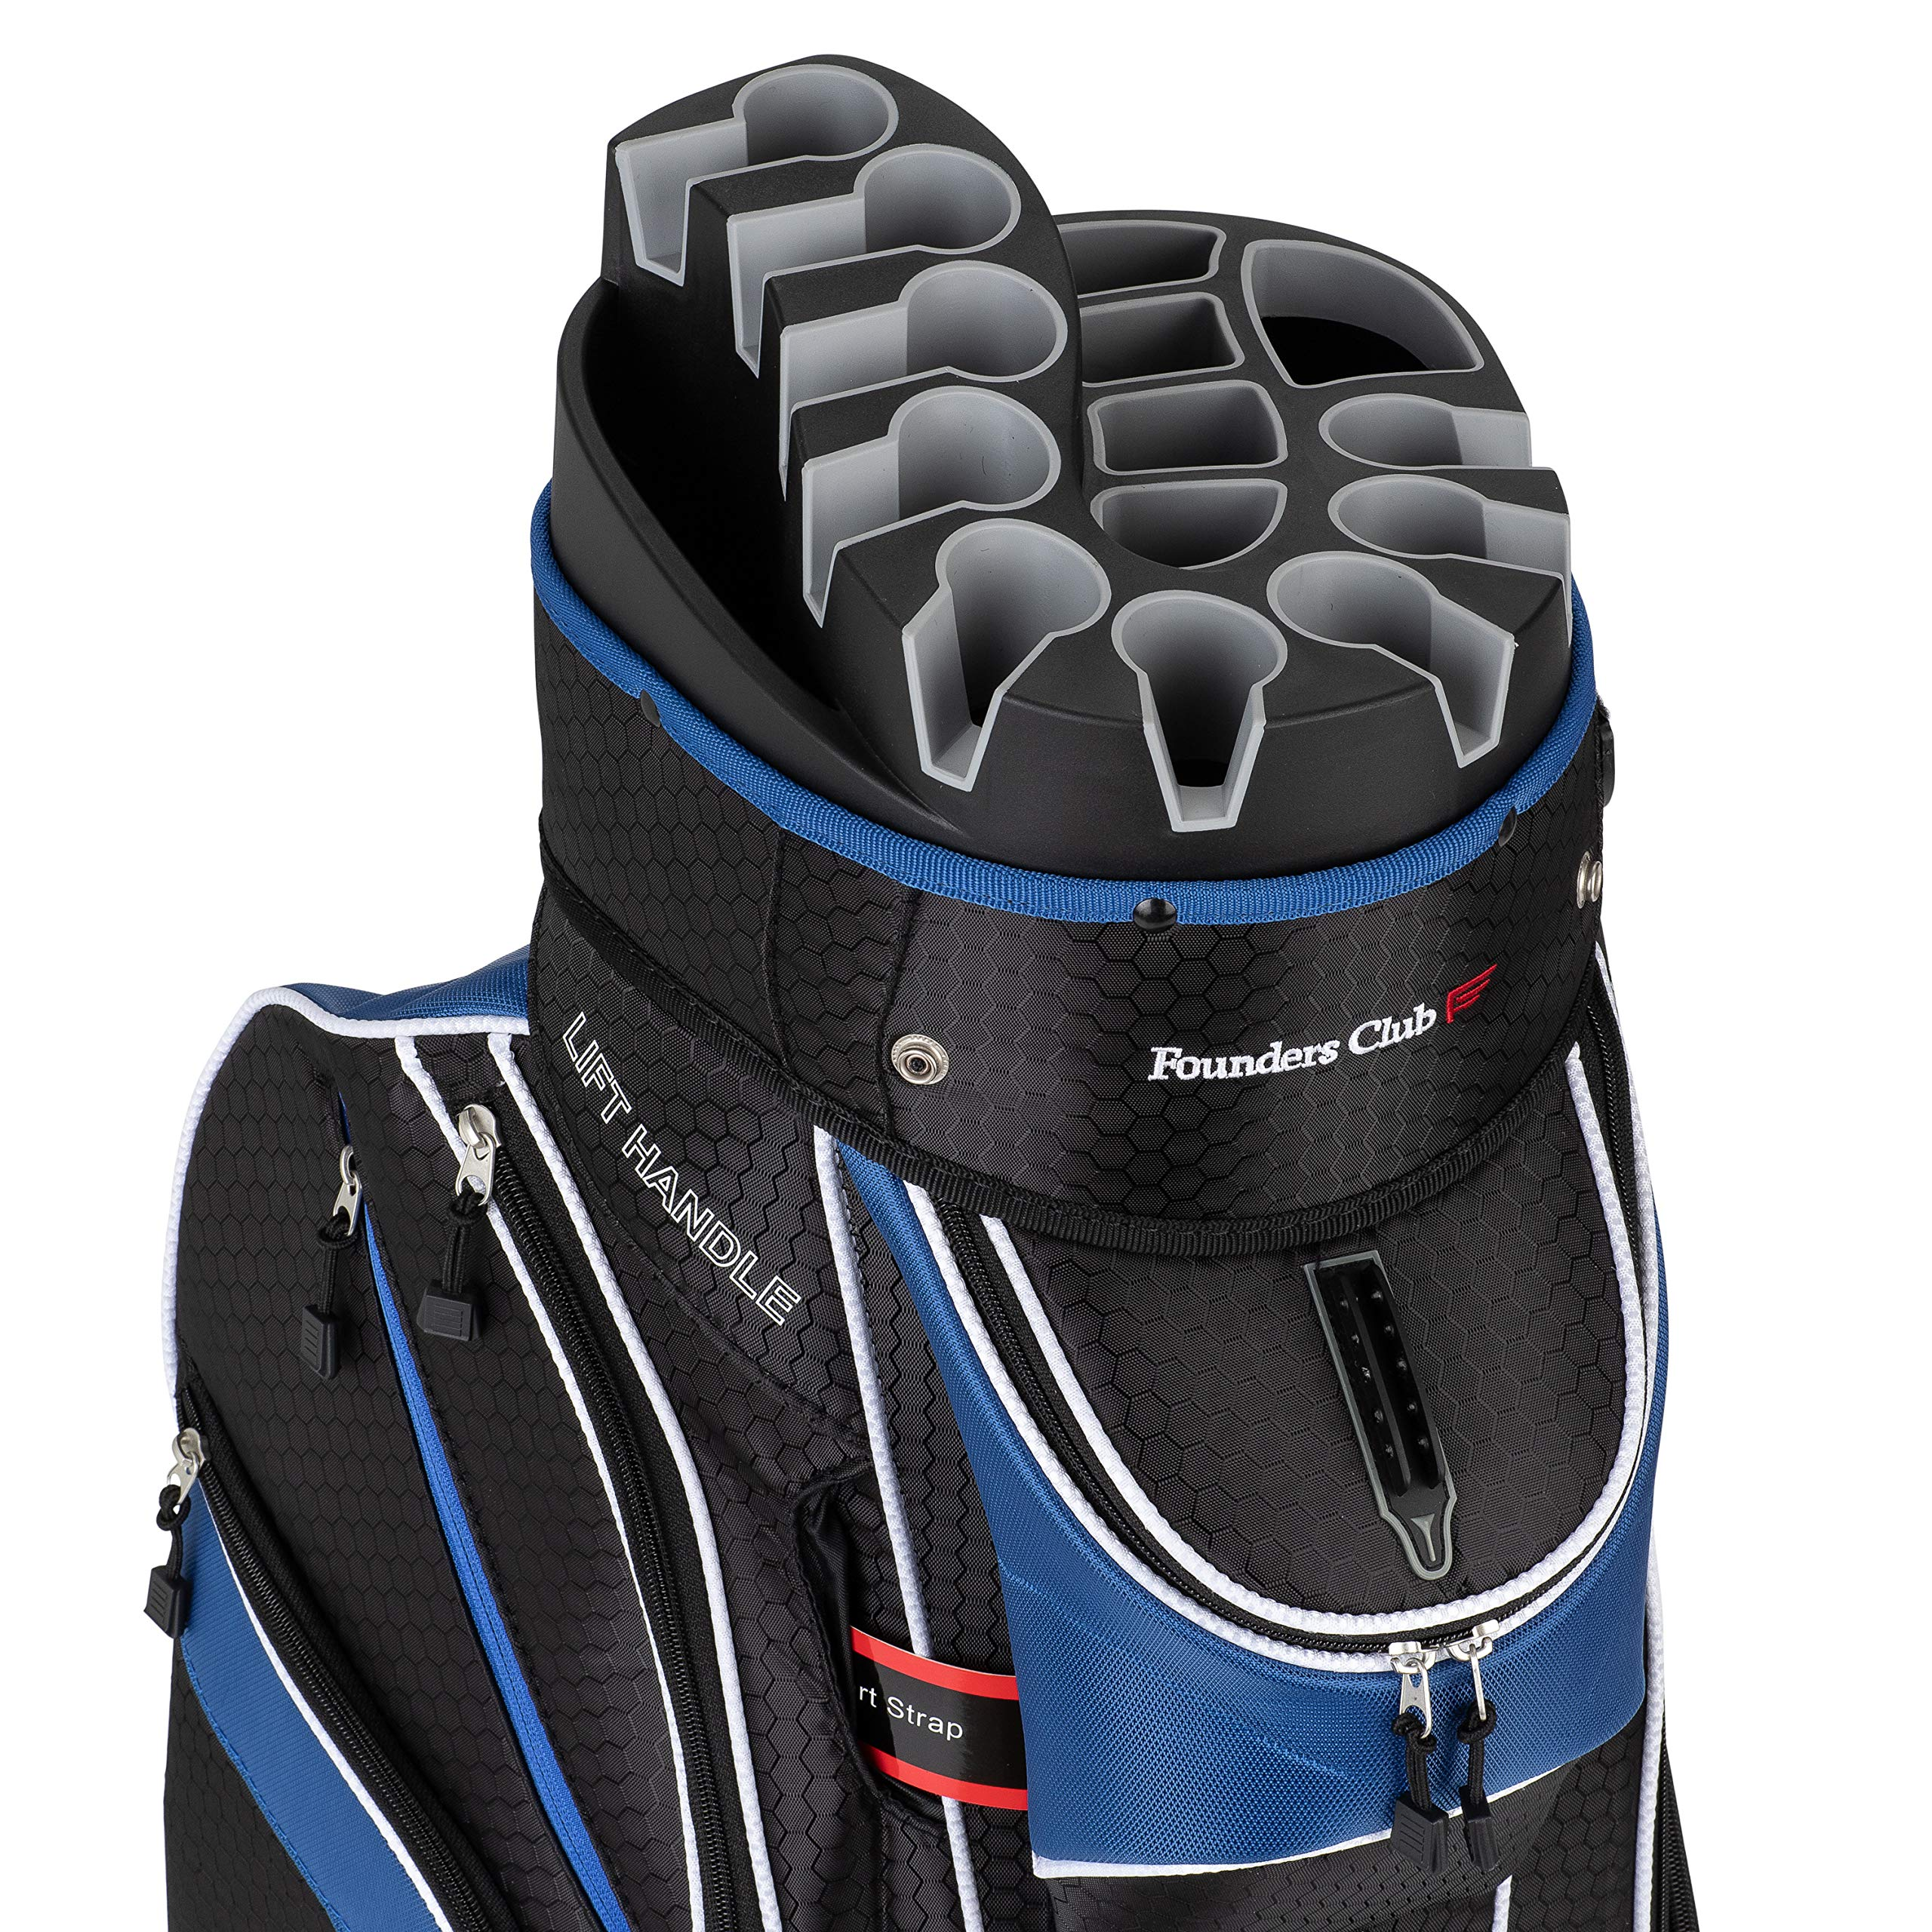 Founders Club Premium Cart Bag with 14 Way Organizer Divider Top (Blue and Black) by Founders Club